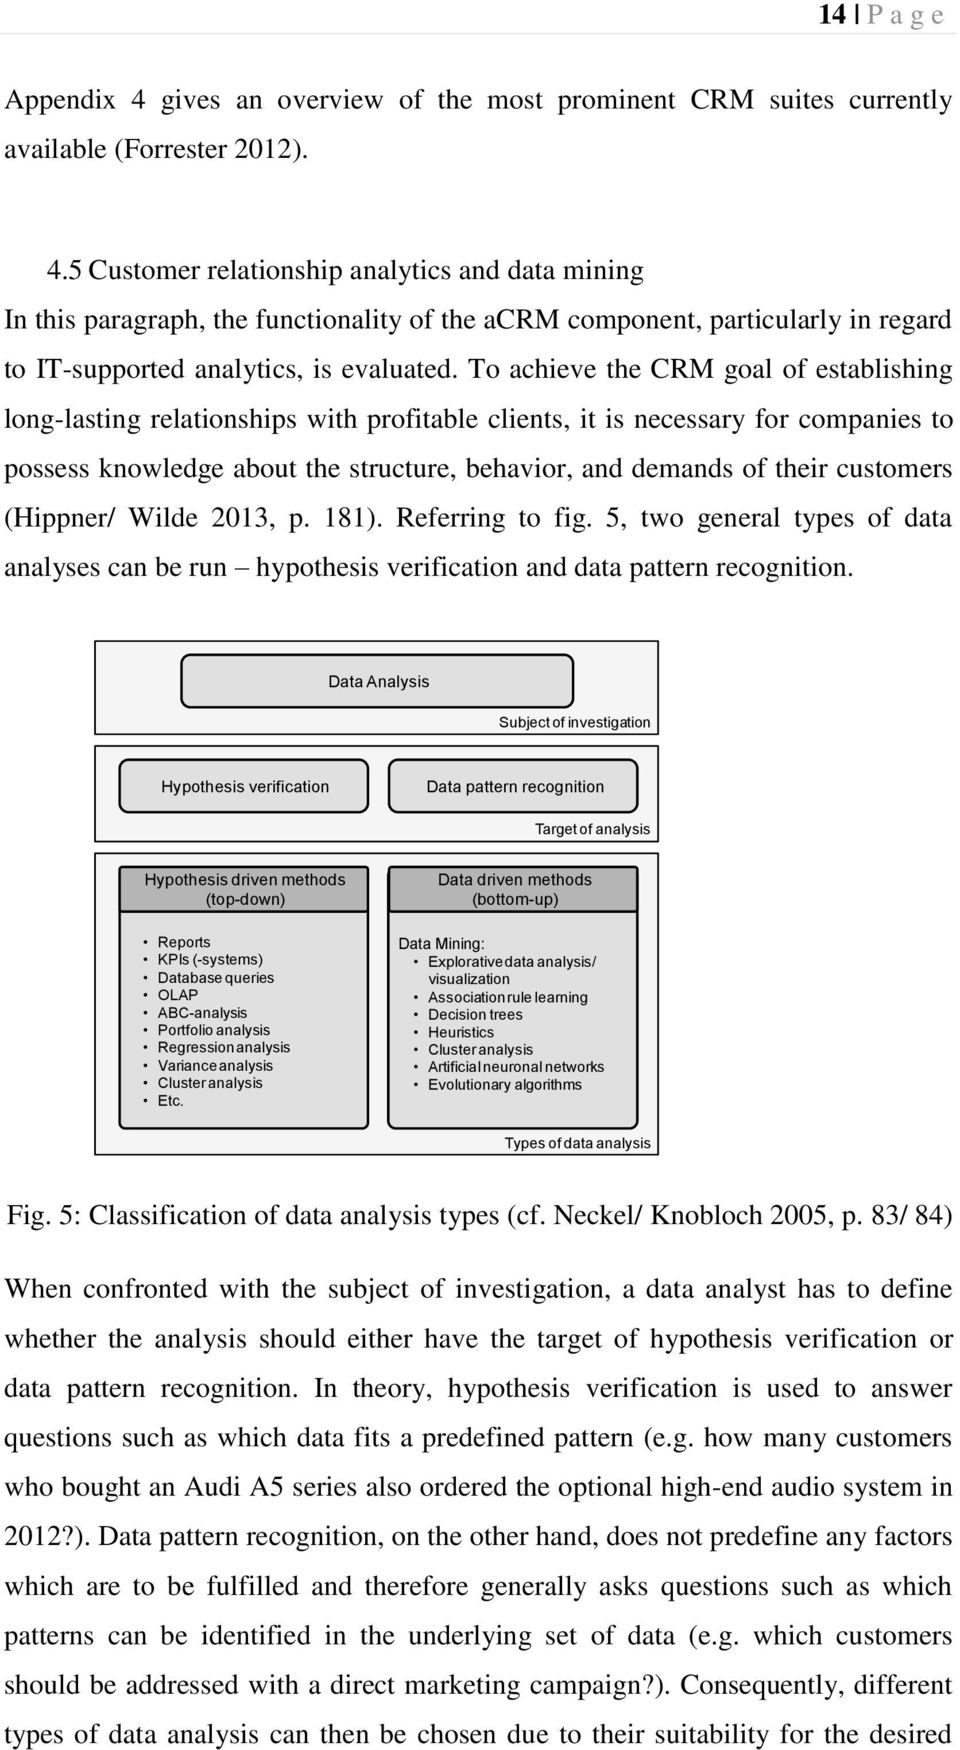 customers (Hippner/ Wilde 2013, p. 181). Referring to fig. 5, two general types of data analyses can be run hypothesis verification and data pattern recognition.